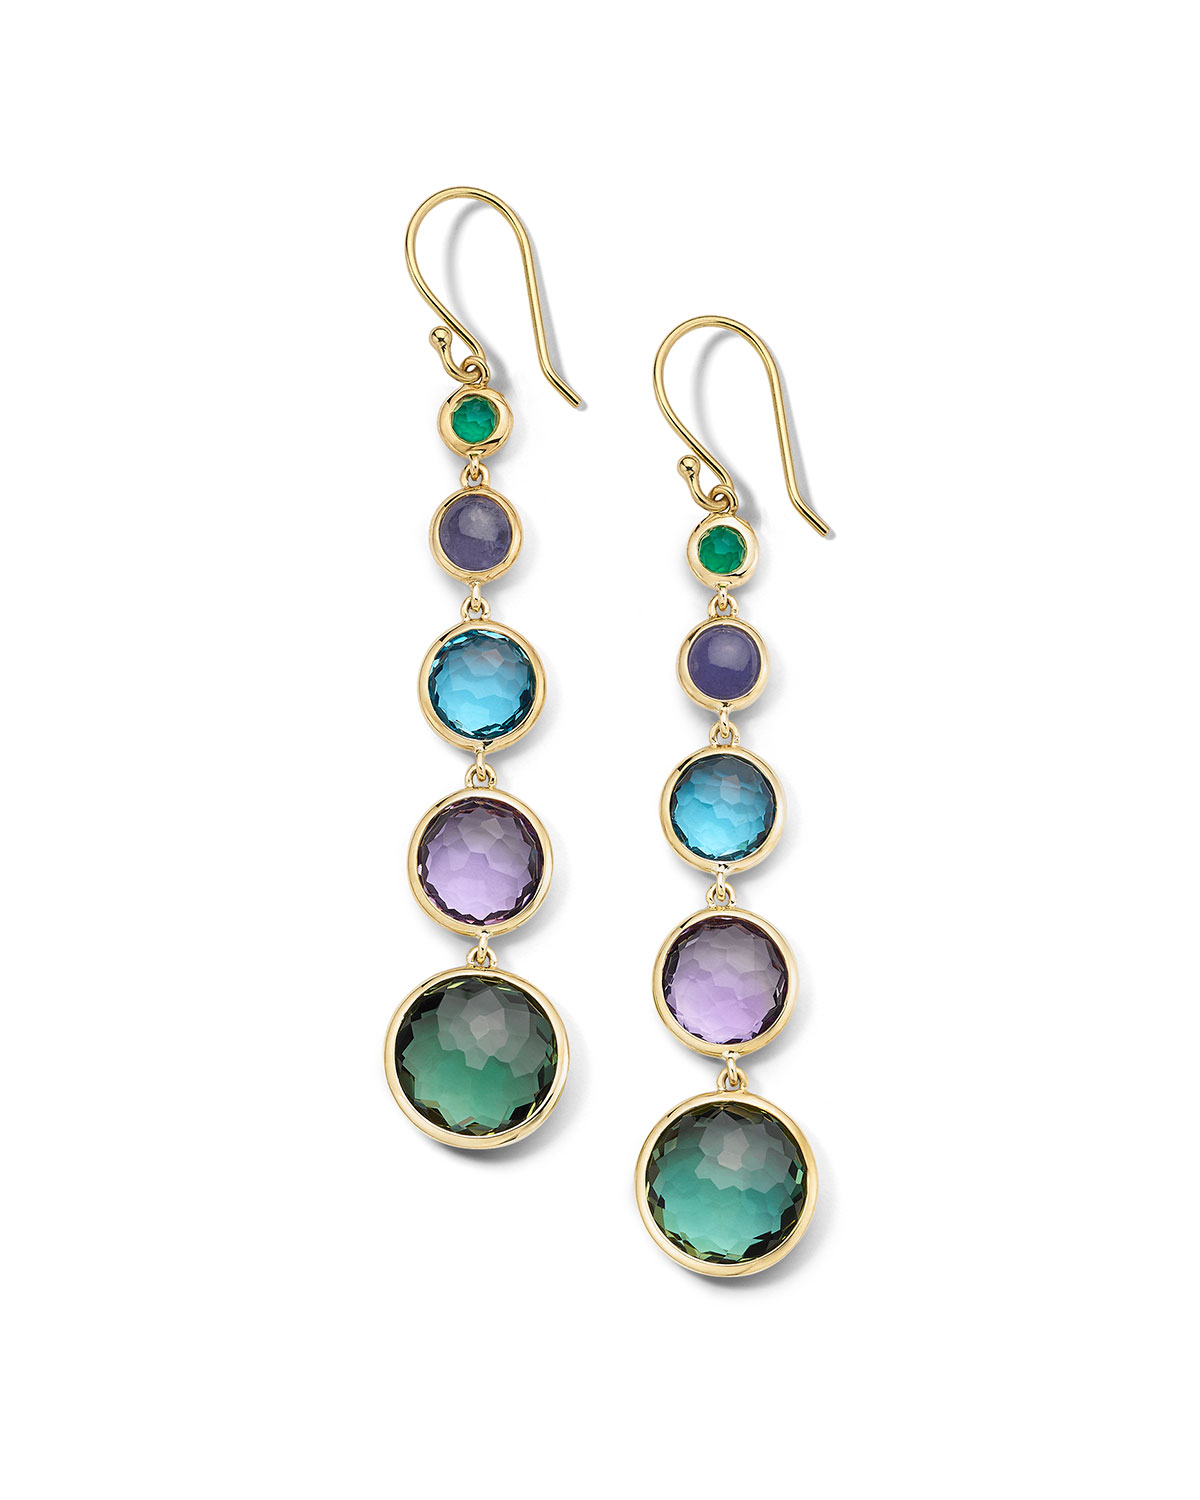 Ippolita Accessories 18K GOLD ROCK CANDY LOLLITINI EARRINGS IN HOLOGEM